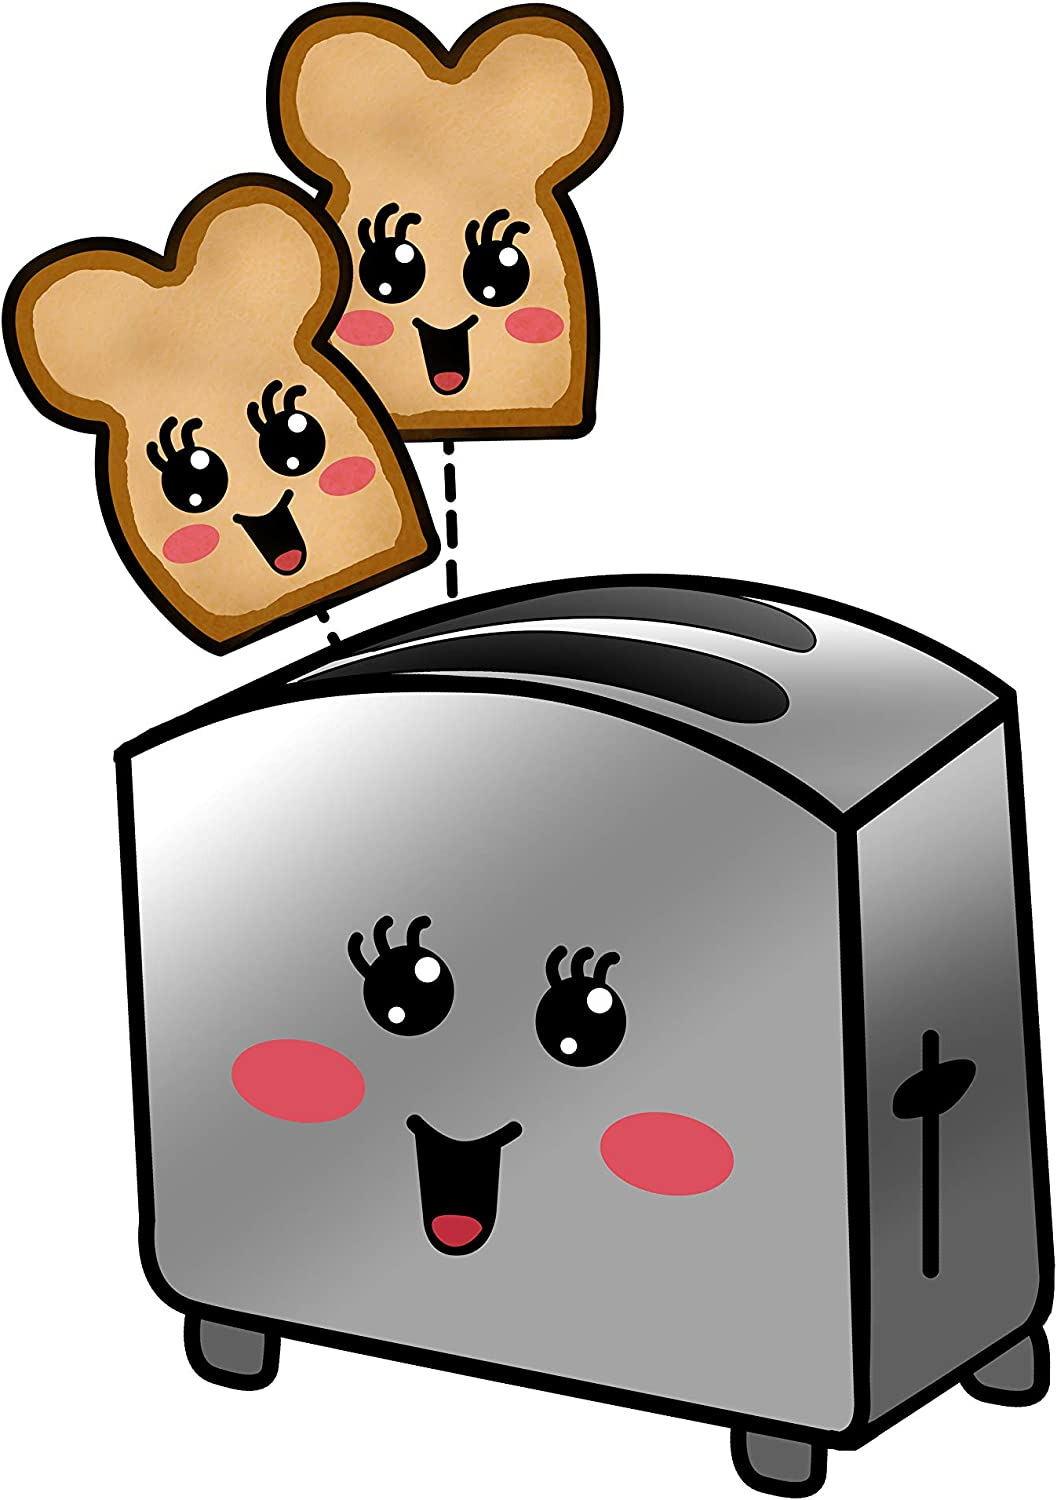 Happy Little Toasts Popping Out of Happy Toaster - Die Cut Vinyl Sticker (4 inches Tall)